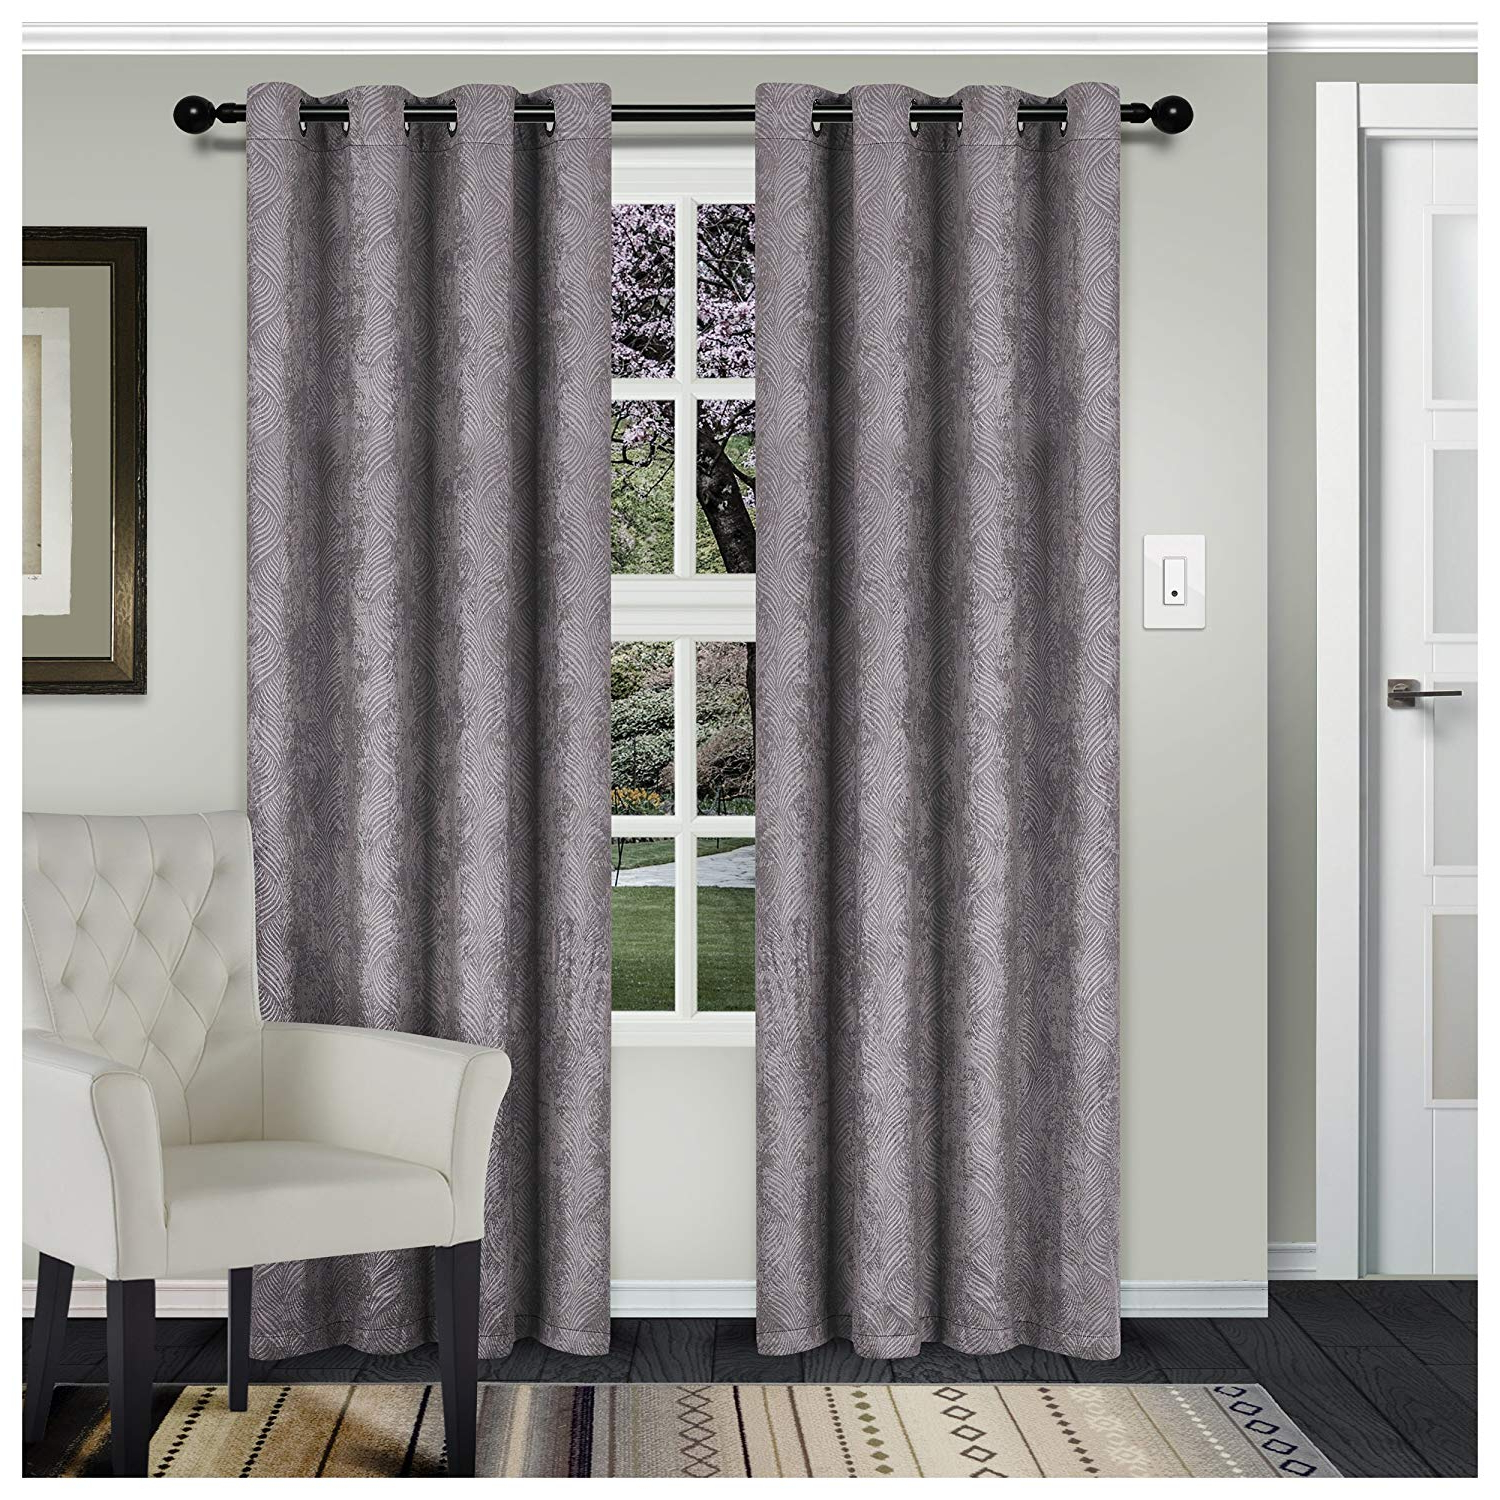 Superior Waverly Blackout Curtain Set Of 2, Thermal Insulated Panel Pair With Grommet Top Header, Beautiful Embossed Wave Room Darkening Drapes, For Widely Used Thermal Insulated Blackout Grommet Top Curtain Panel Pairs (View 13 of 20)